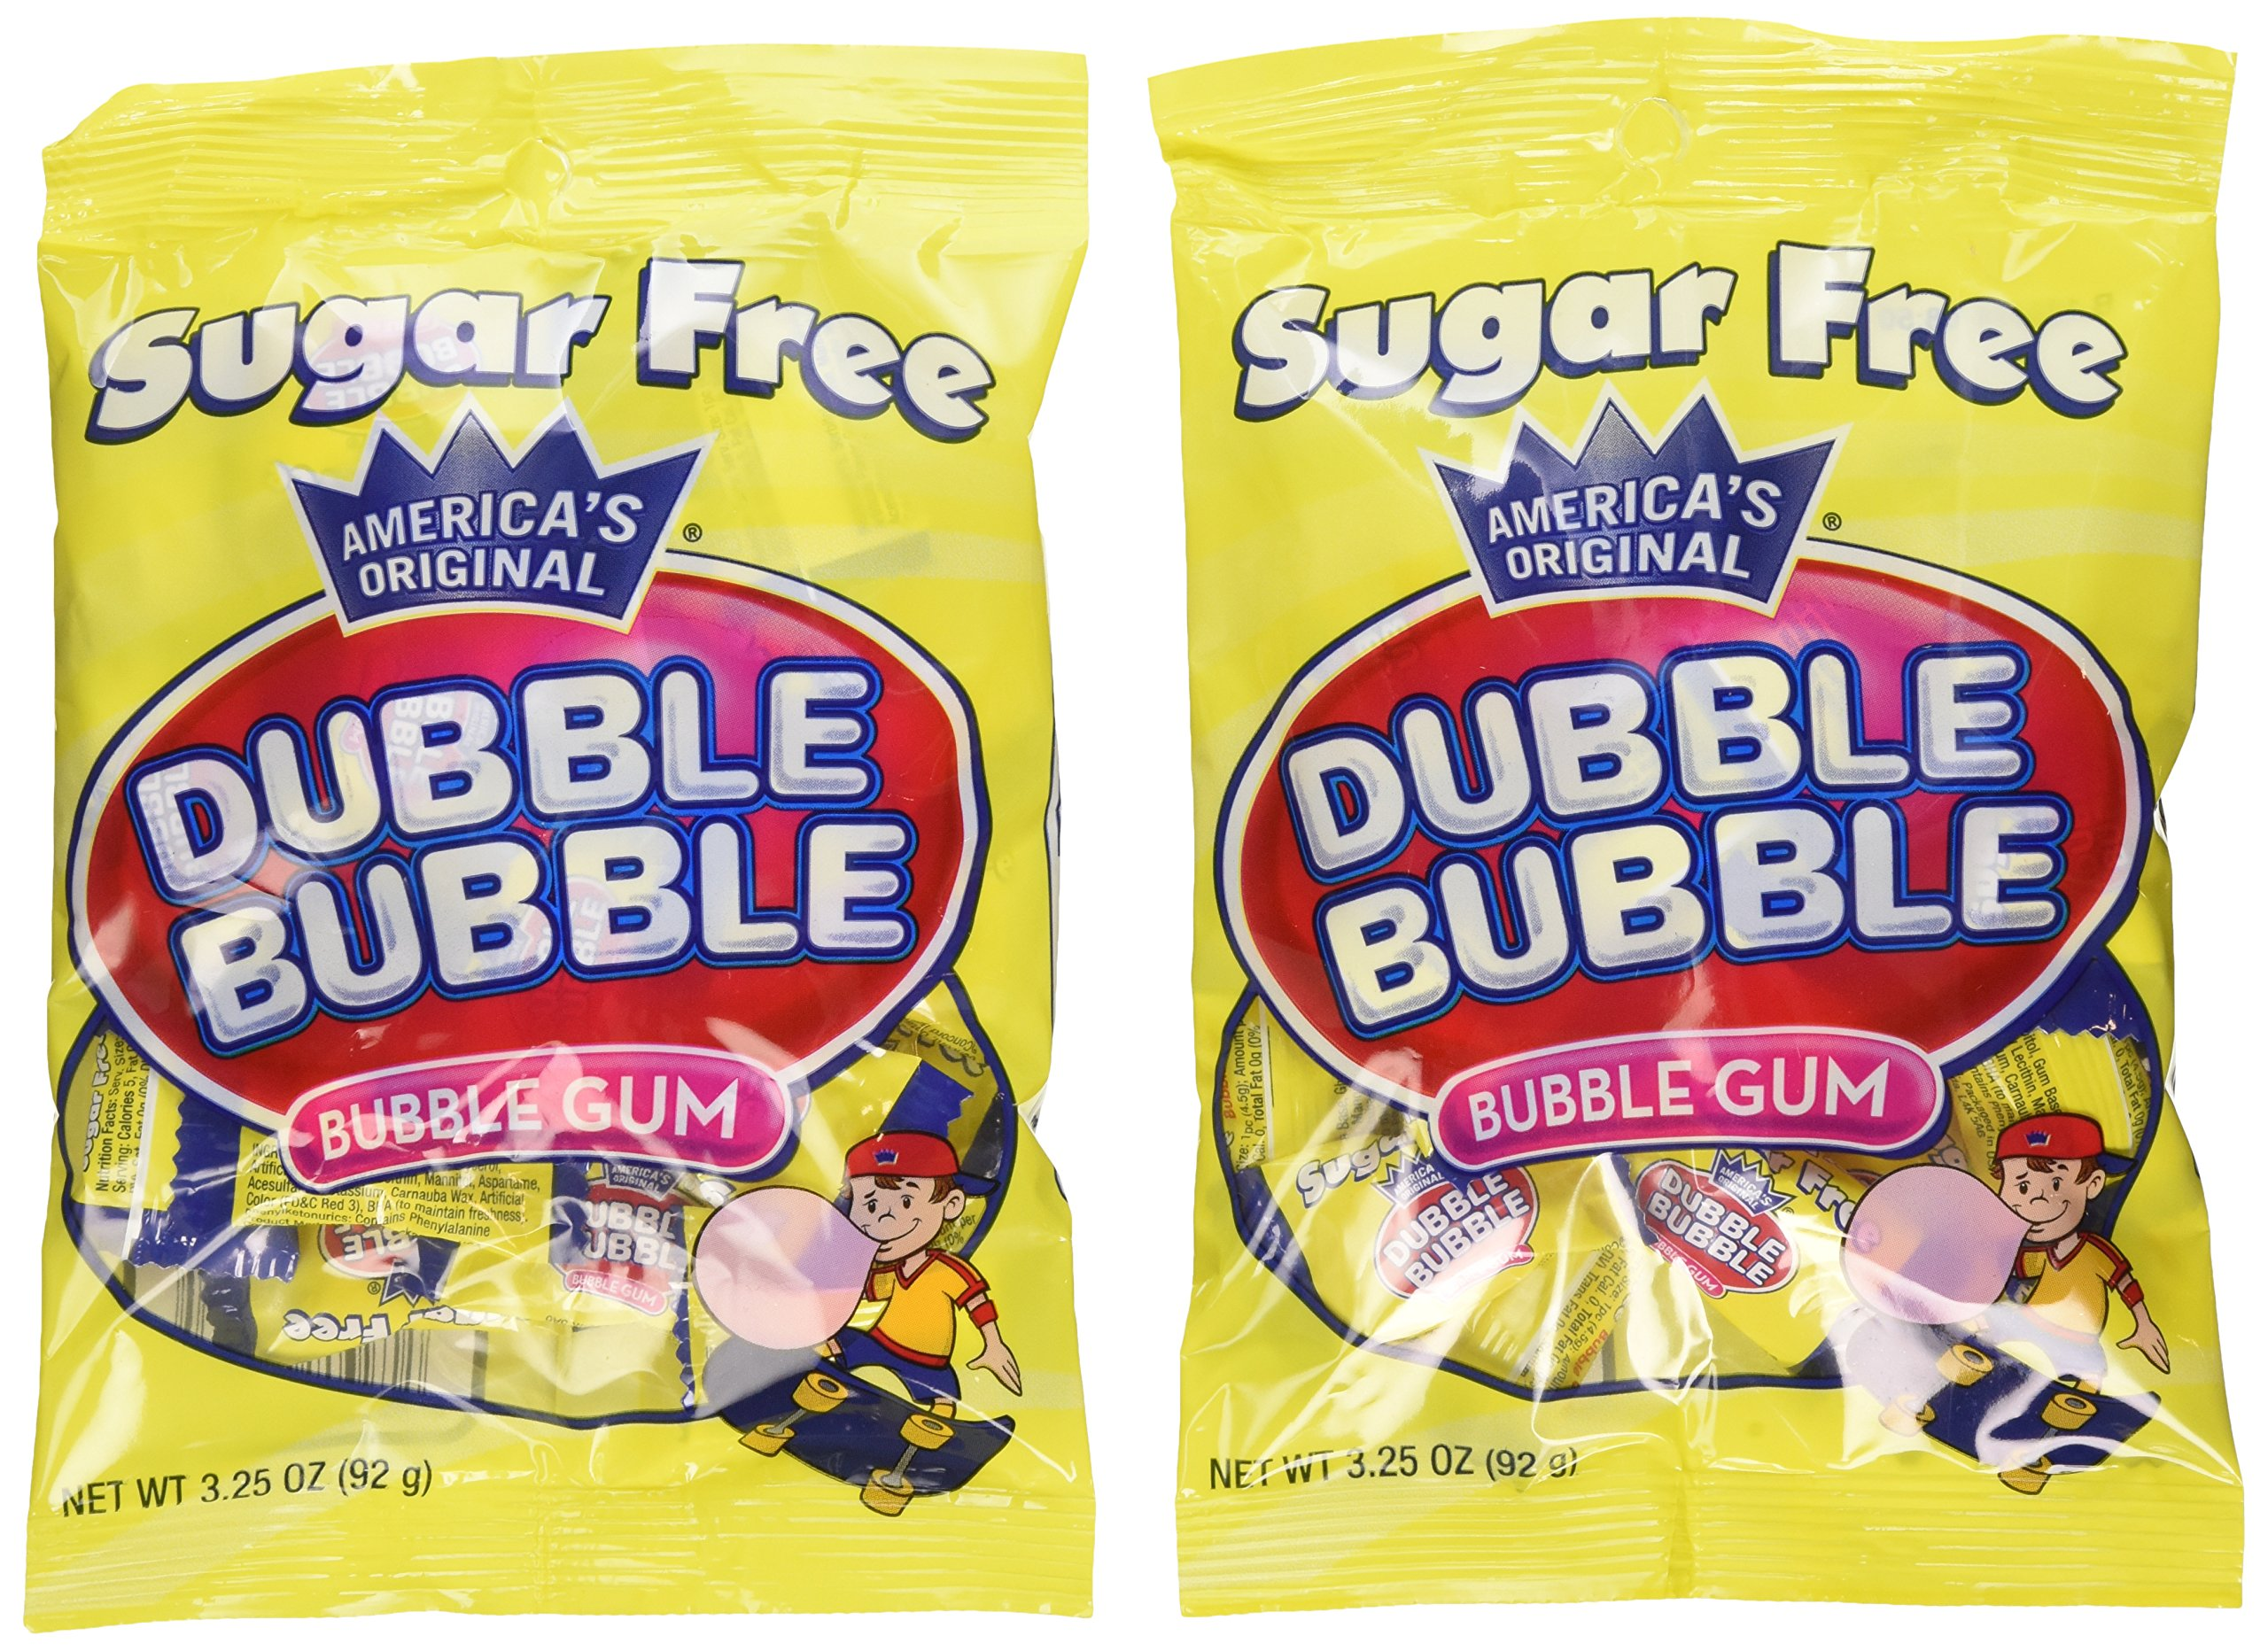 Dubble Bubble Sugar Free Bubble Gum - Net Wt. 3.25 oz. - Pack of 12 by Dubble Bubble